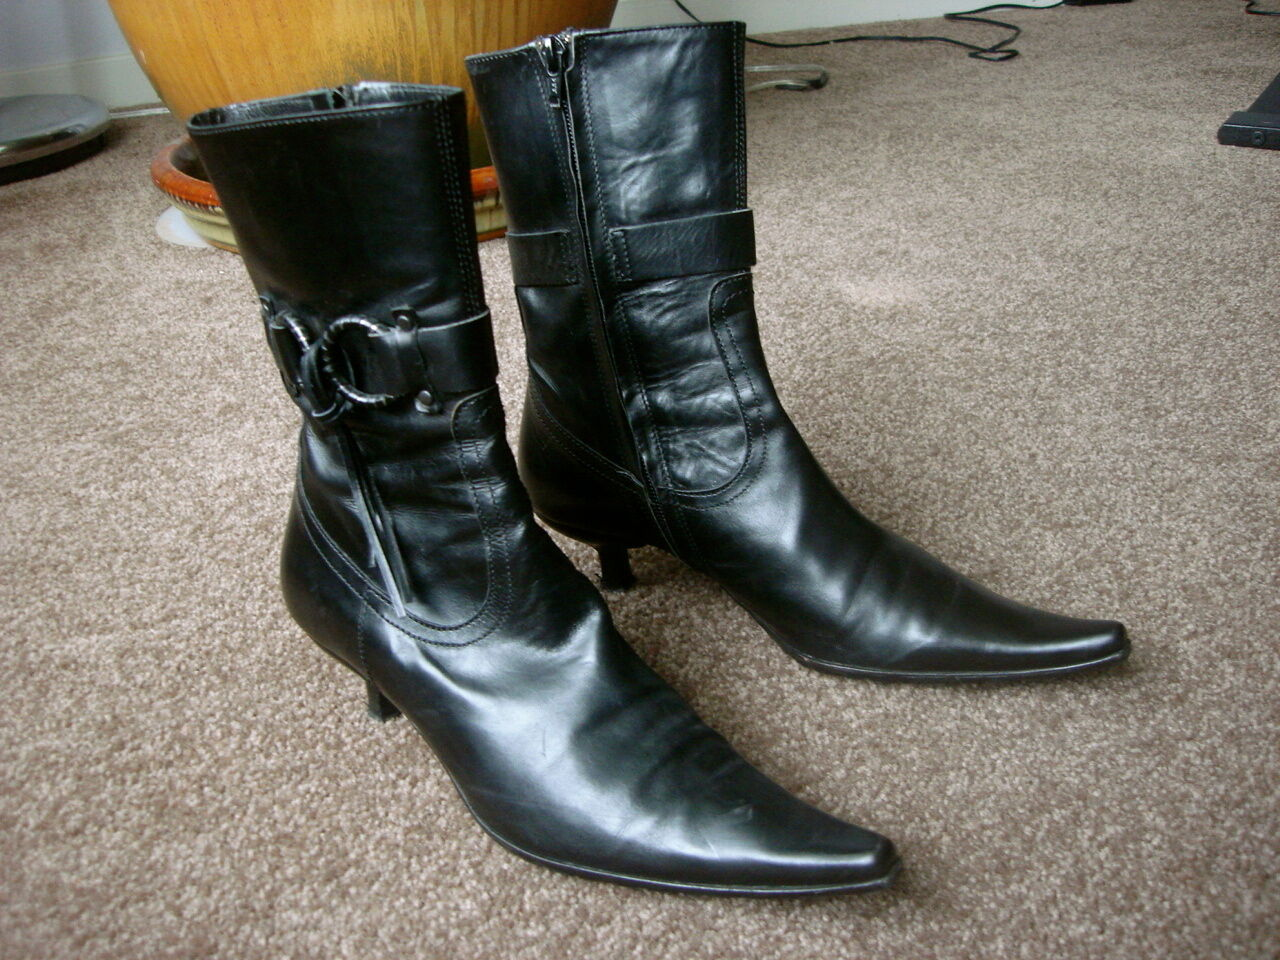 AUTH JOY & PEACE ITALY LEATHER BOOTS Sz 36, 6 US